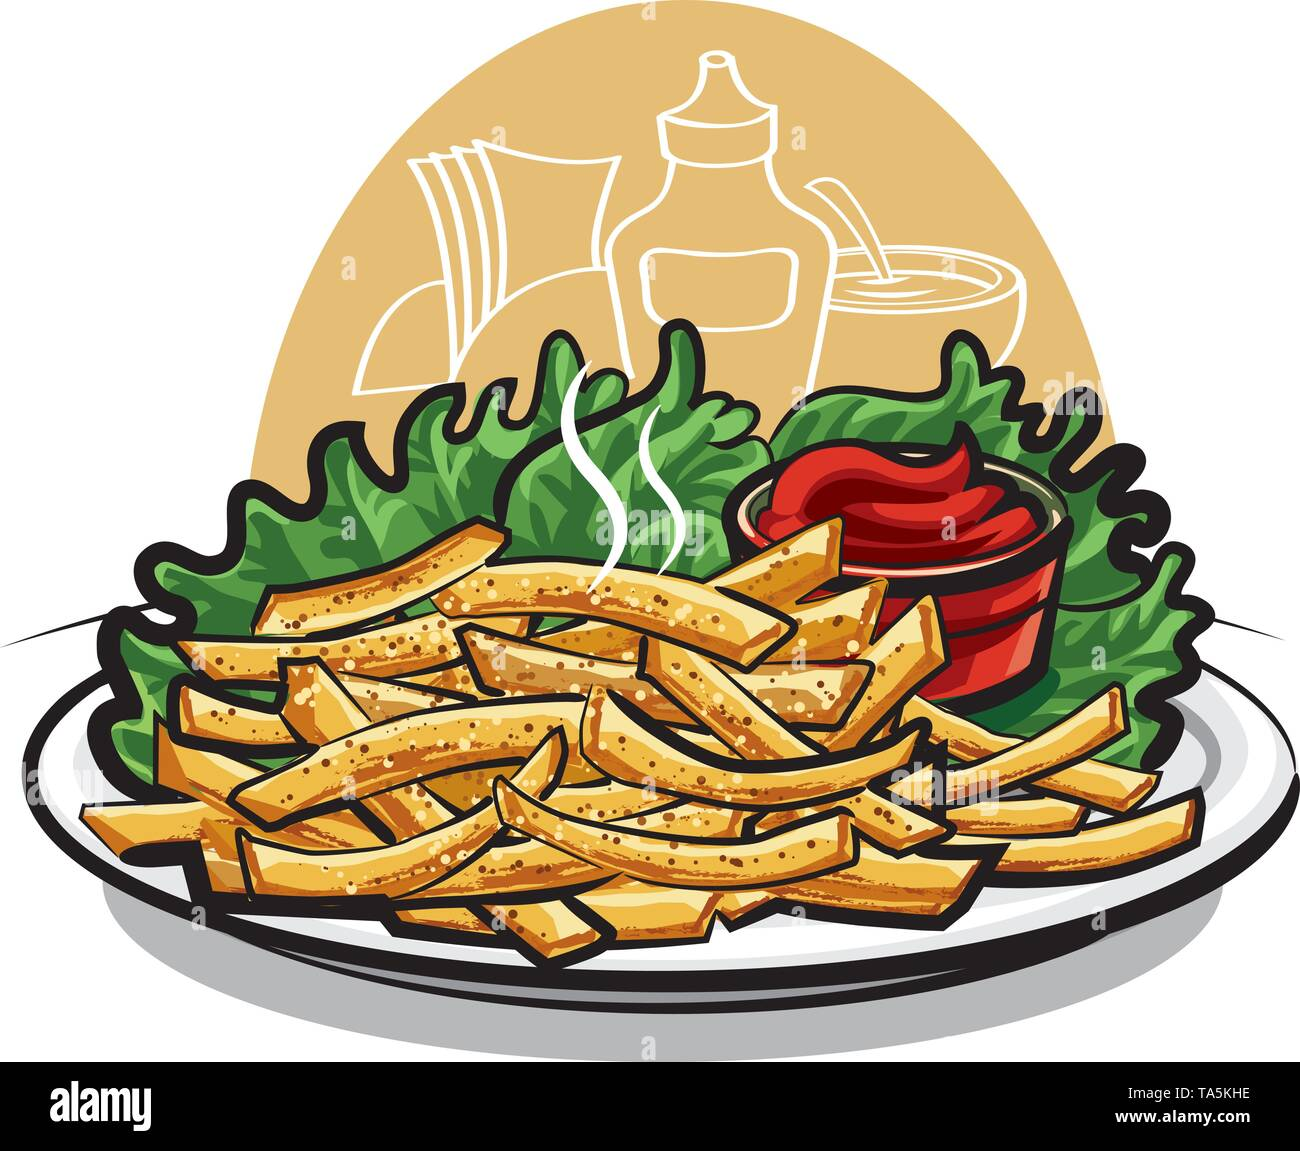 fries with ketchup - Stock Image